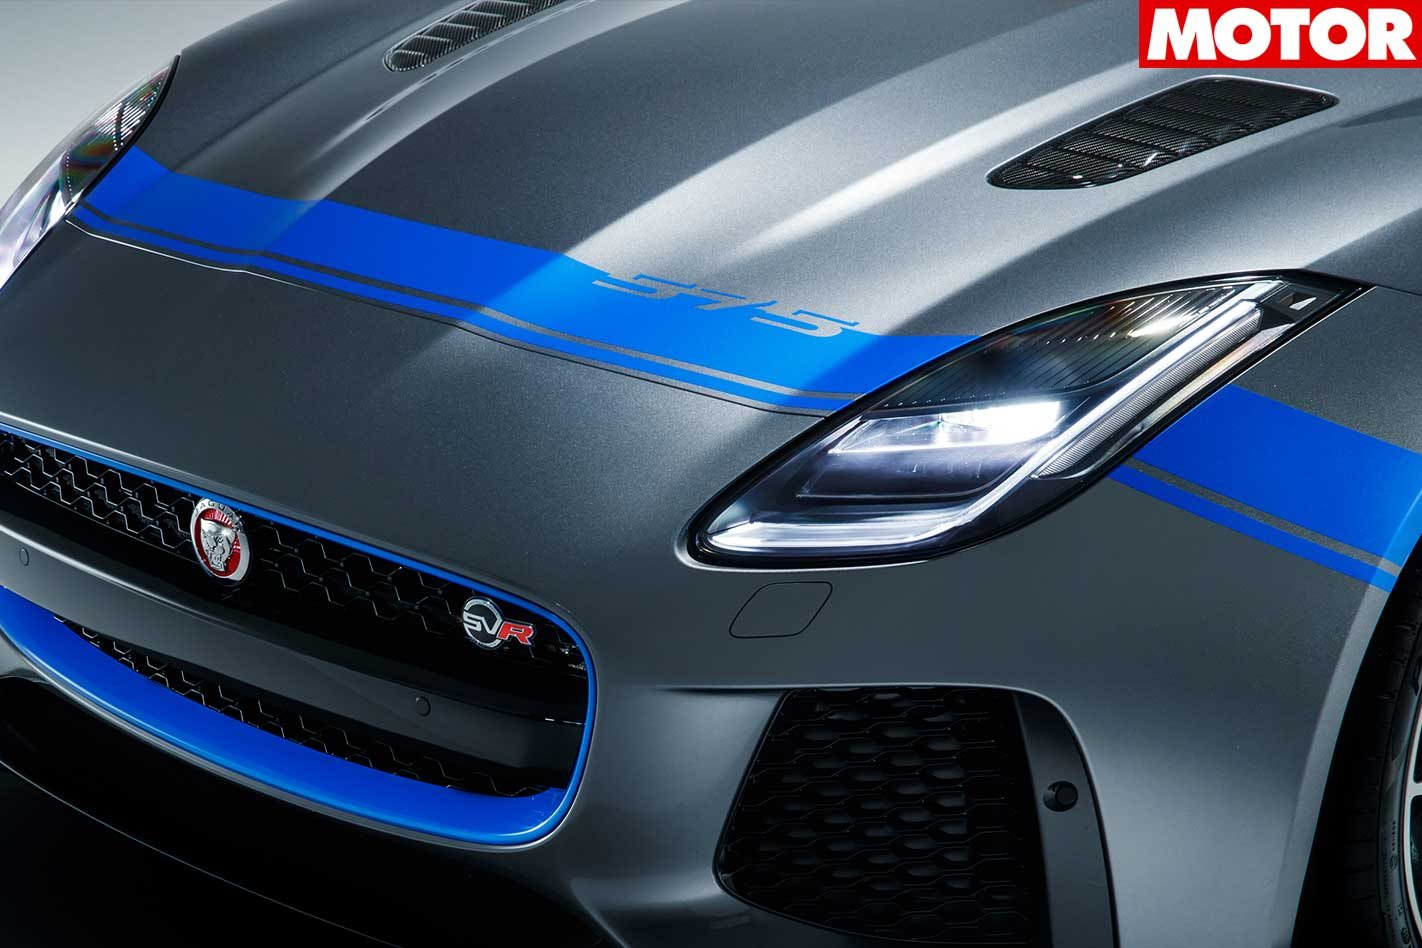 Jaguar F-Type SVR Graphic Pack is a no cost option